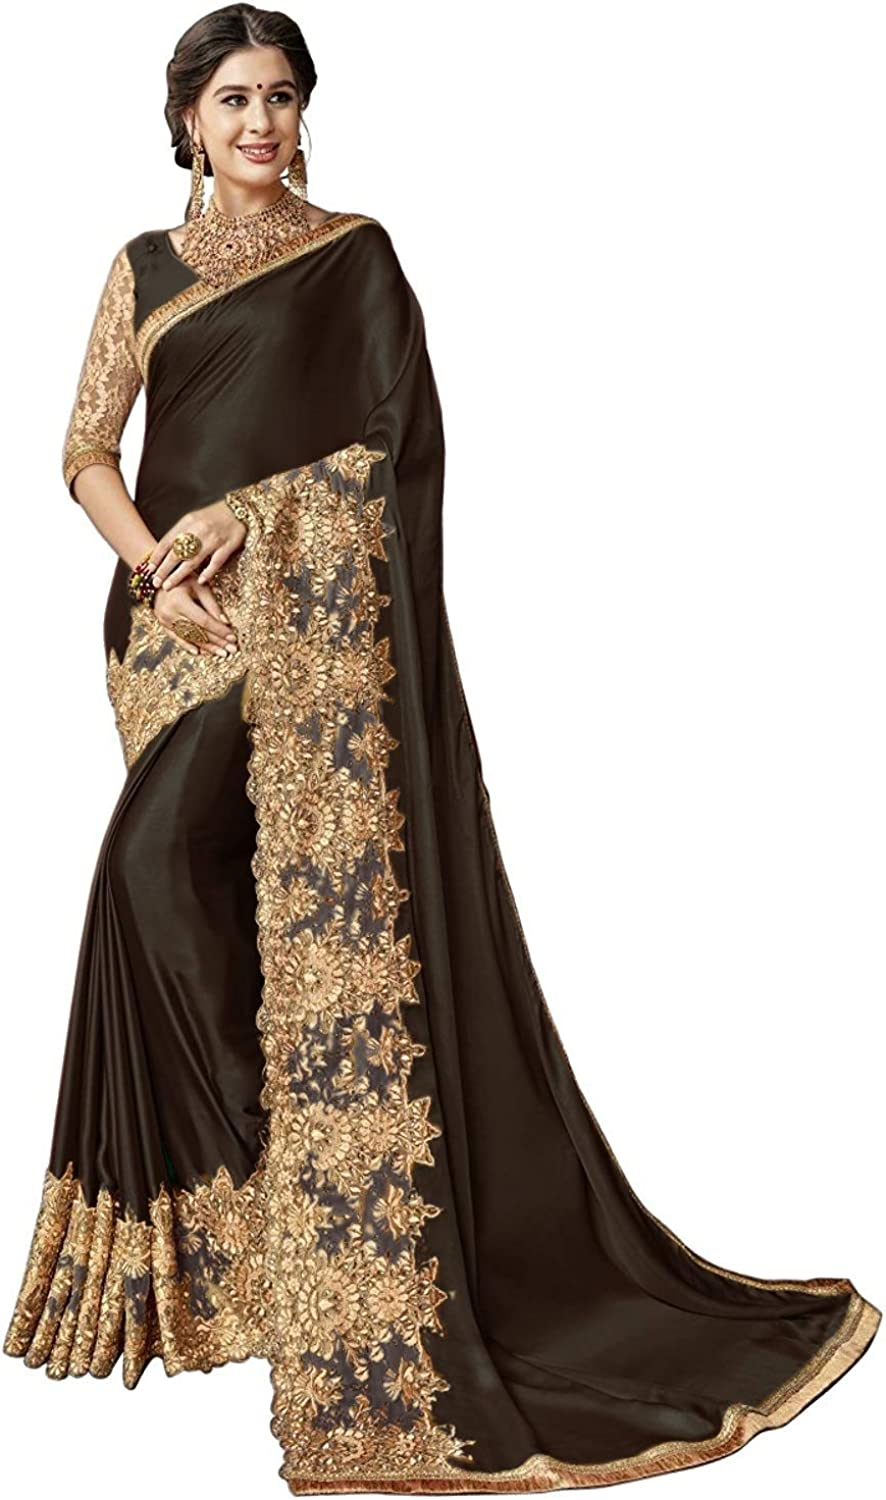 Top 8 Full Cotton Home Use Sarees New Collection 2017